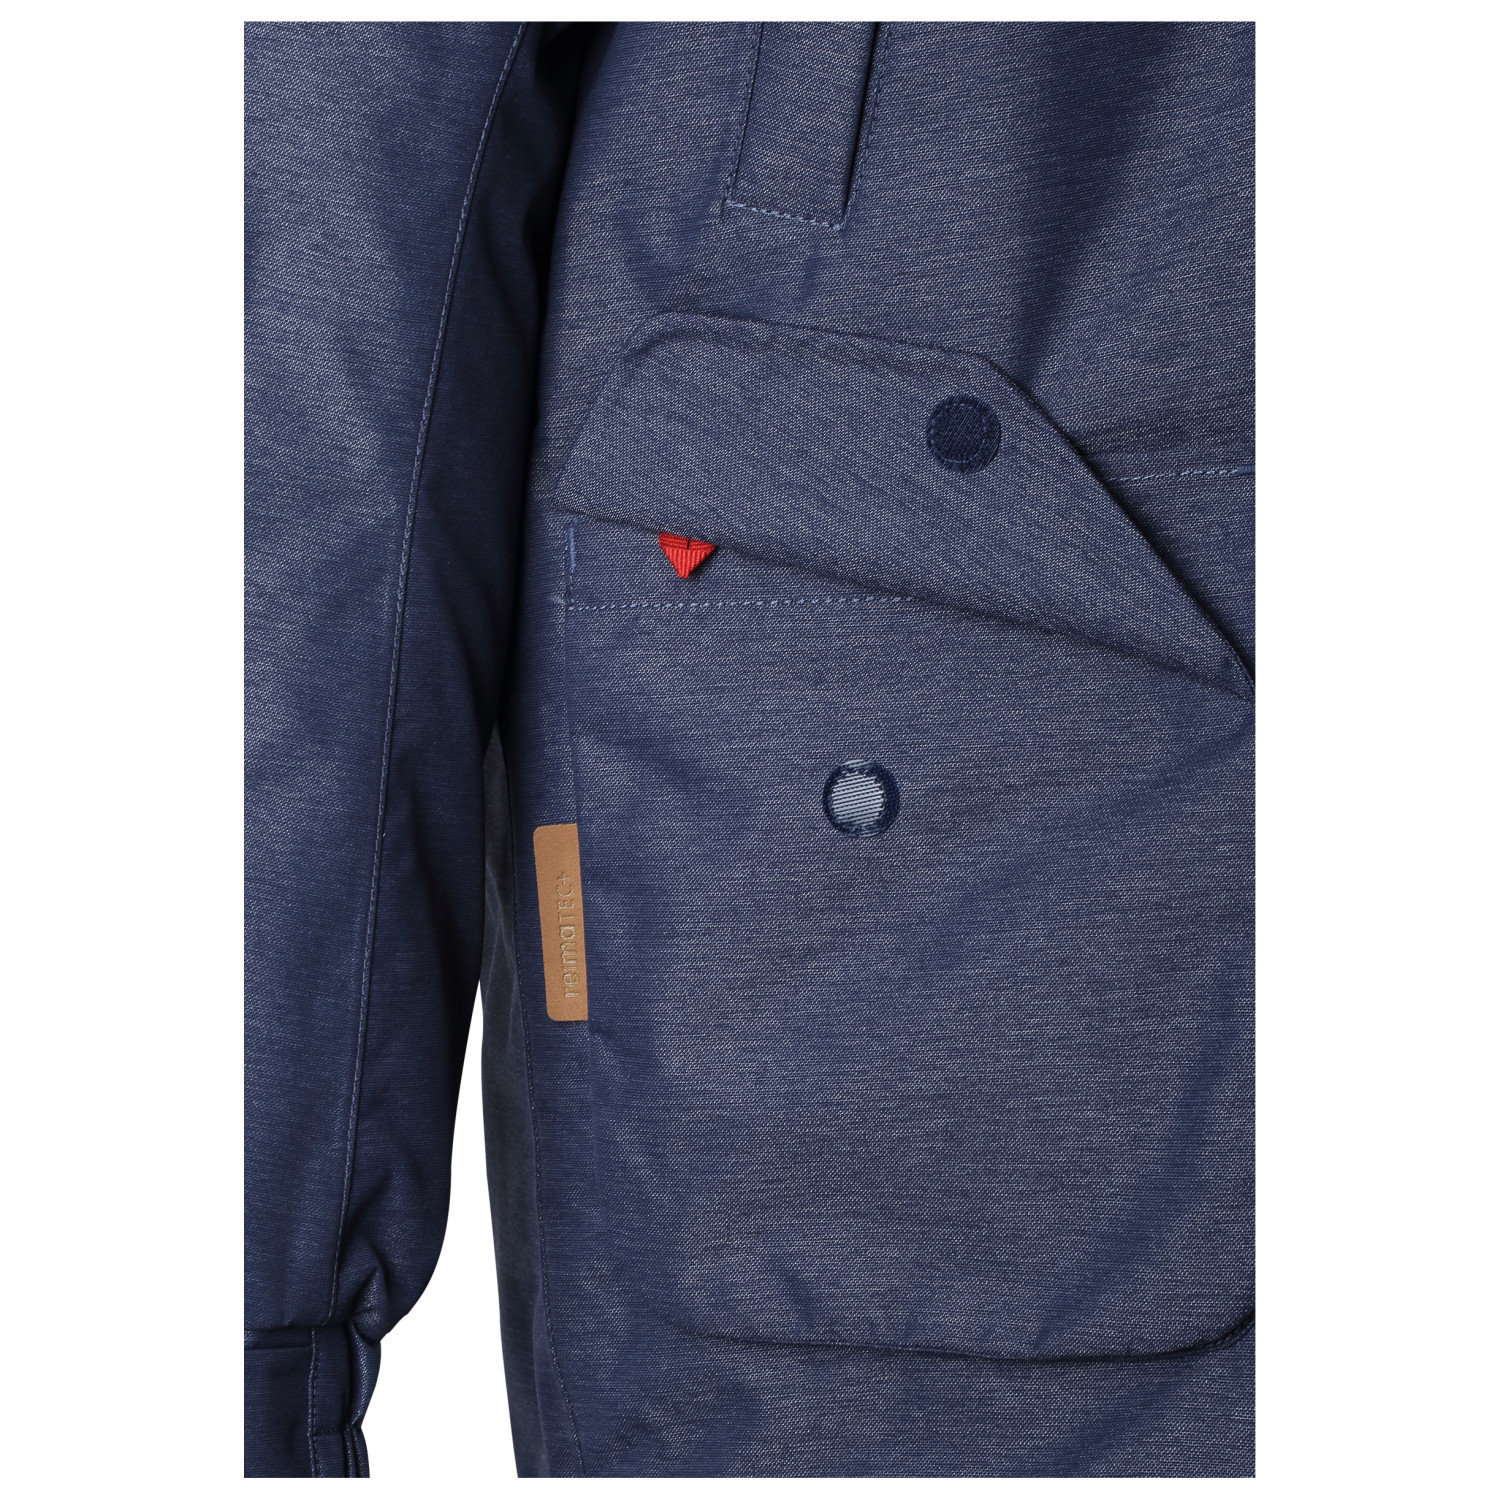 adidas performance jacket Sale,up to 73% Discounts